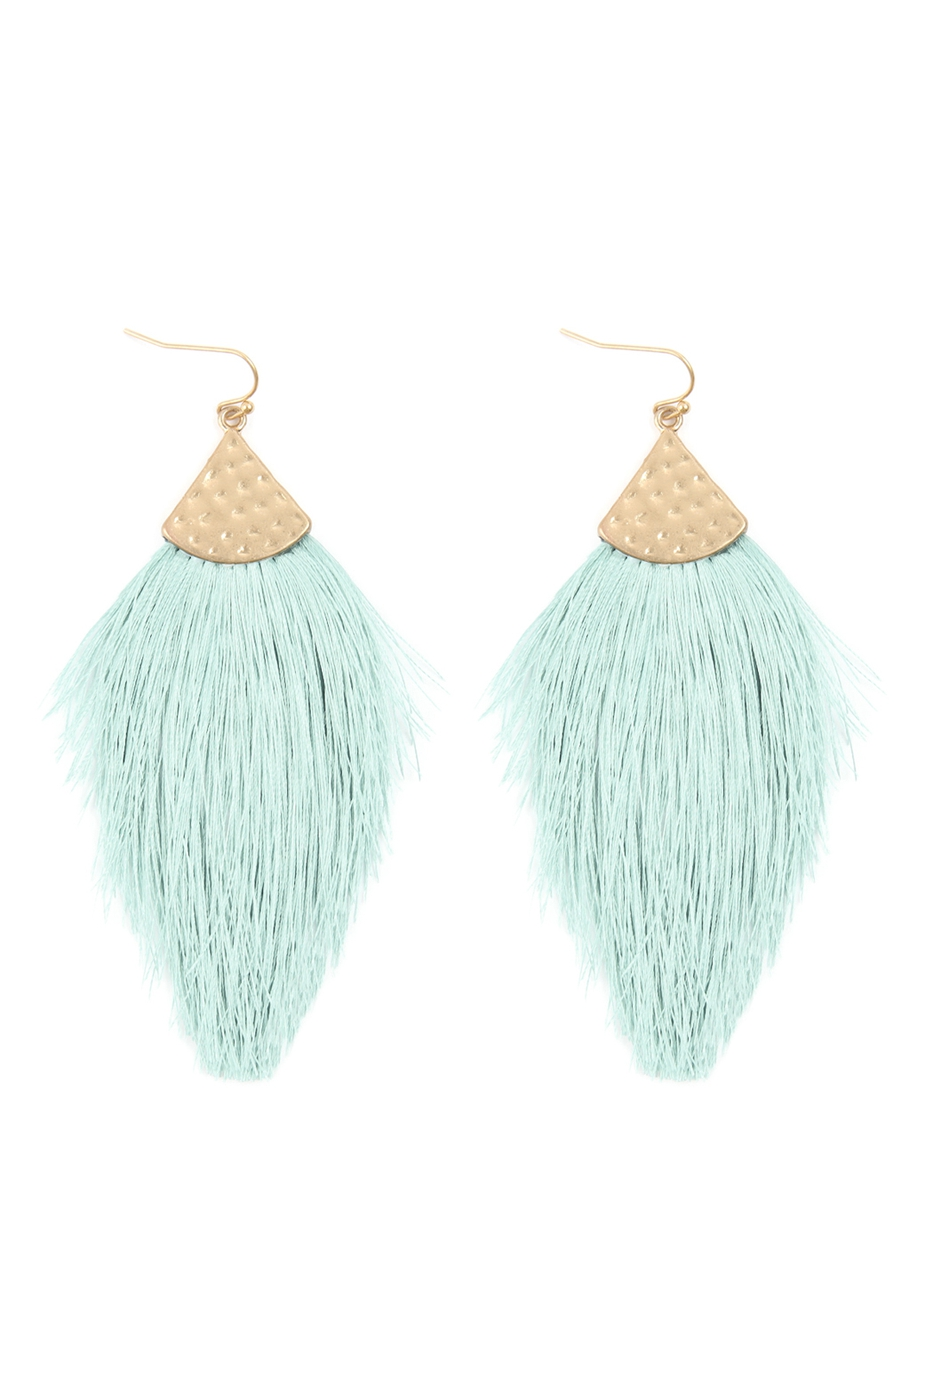 THREAD TASSEL DROP EARRING - orangeshine.com